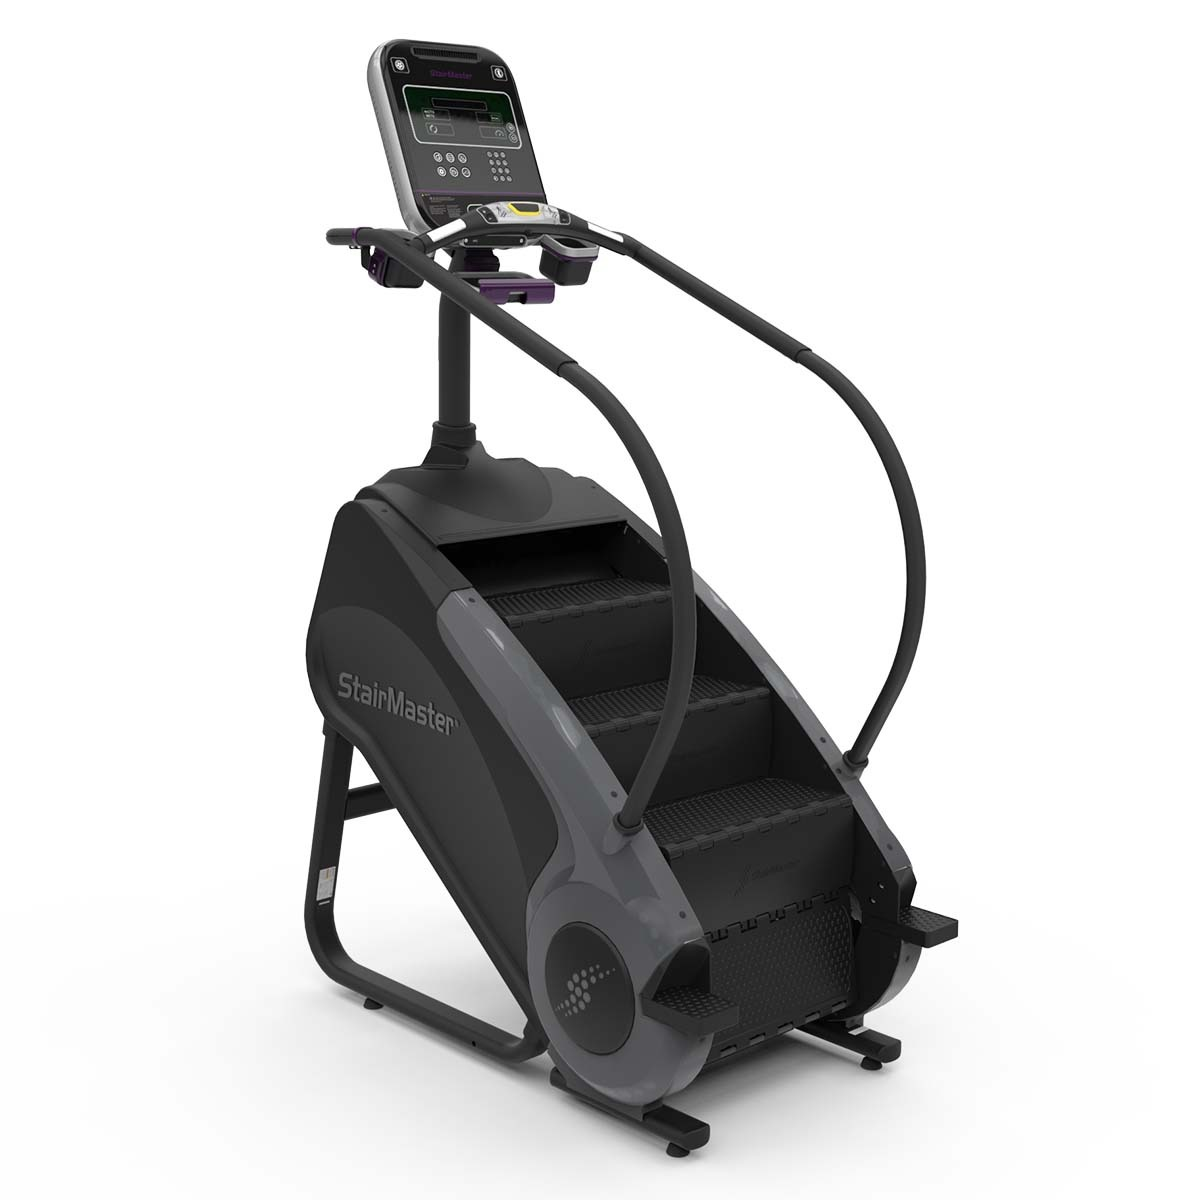 Richmond StairMaster Gauntlet LCD - Stepper - Lifestyle Equipment